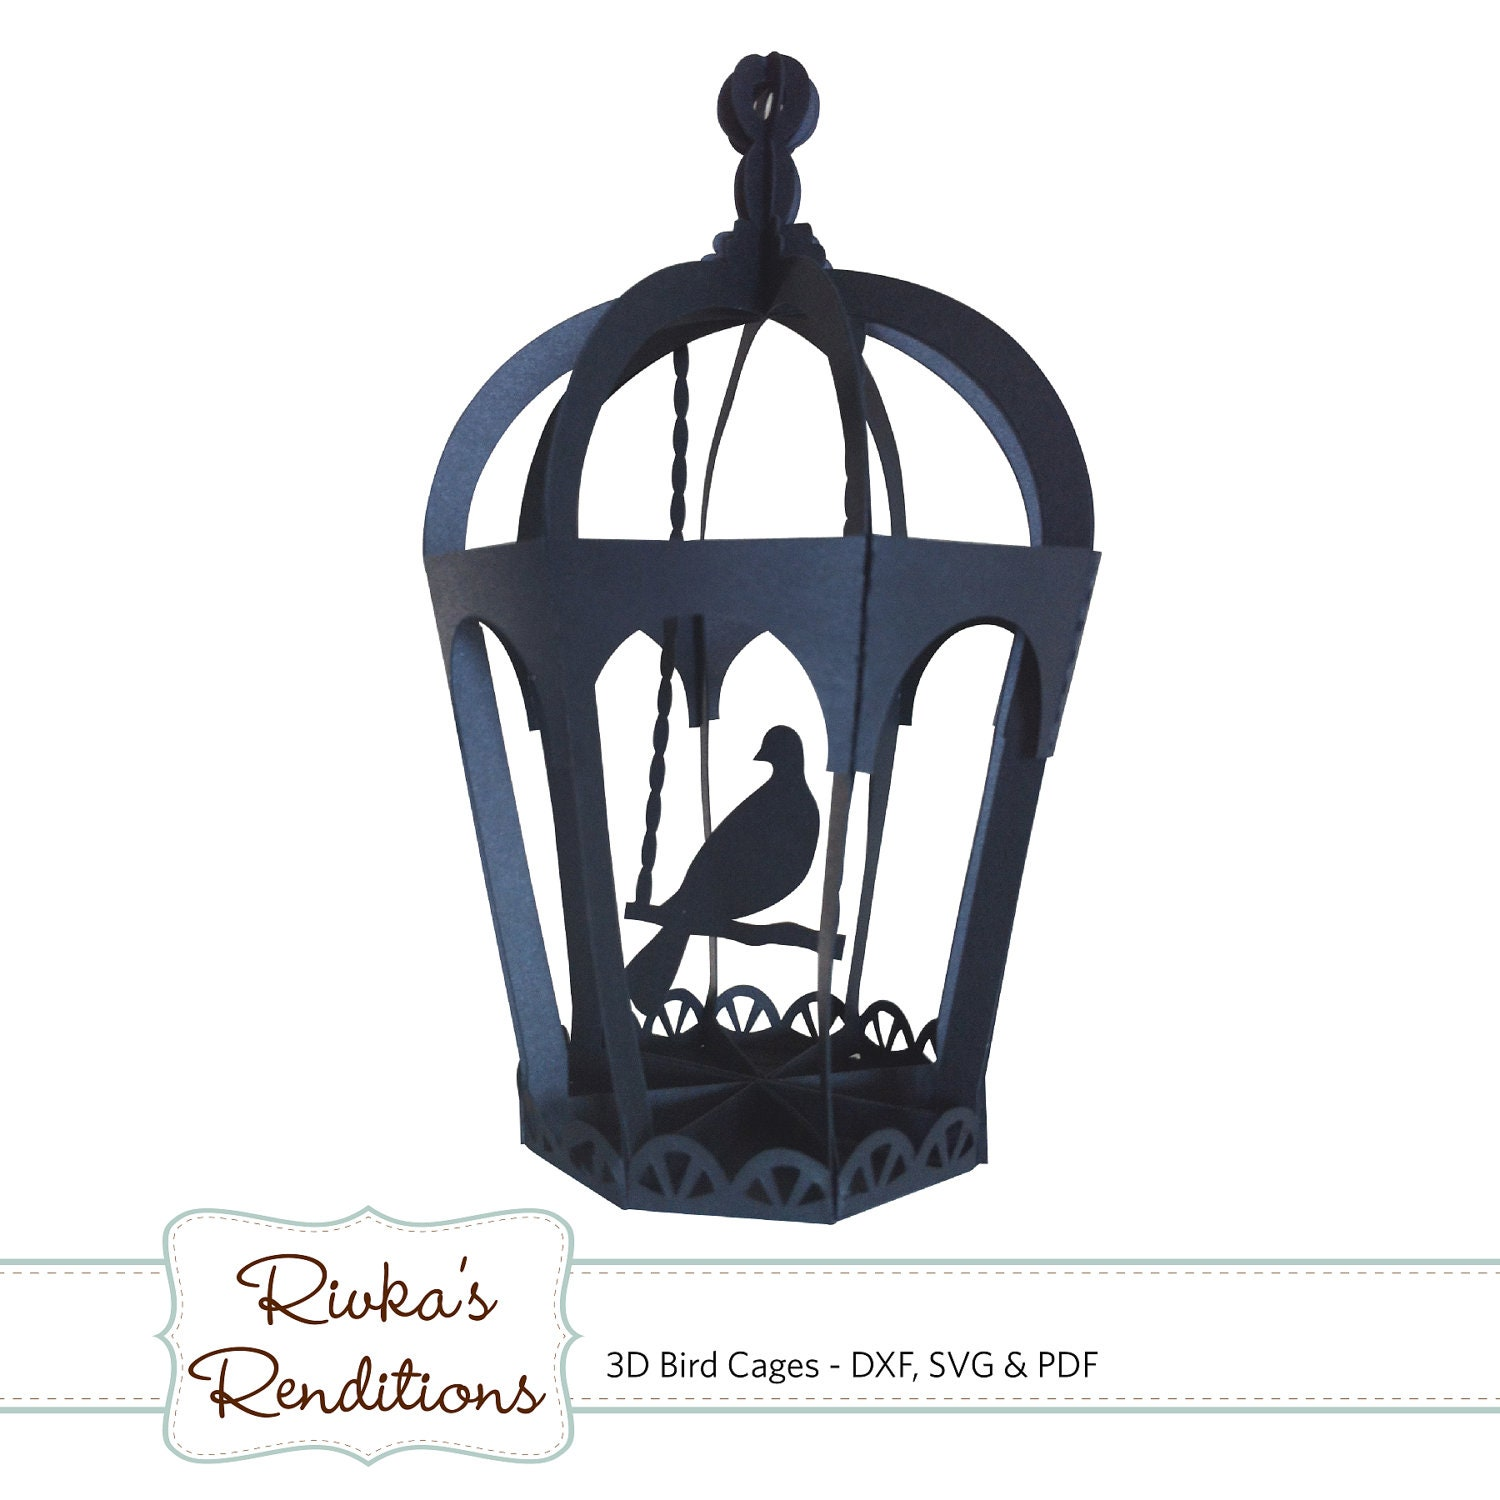 3d Bird Cages Digital Cut File And Template Dxf Svg And Pdf